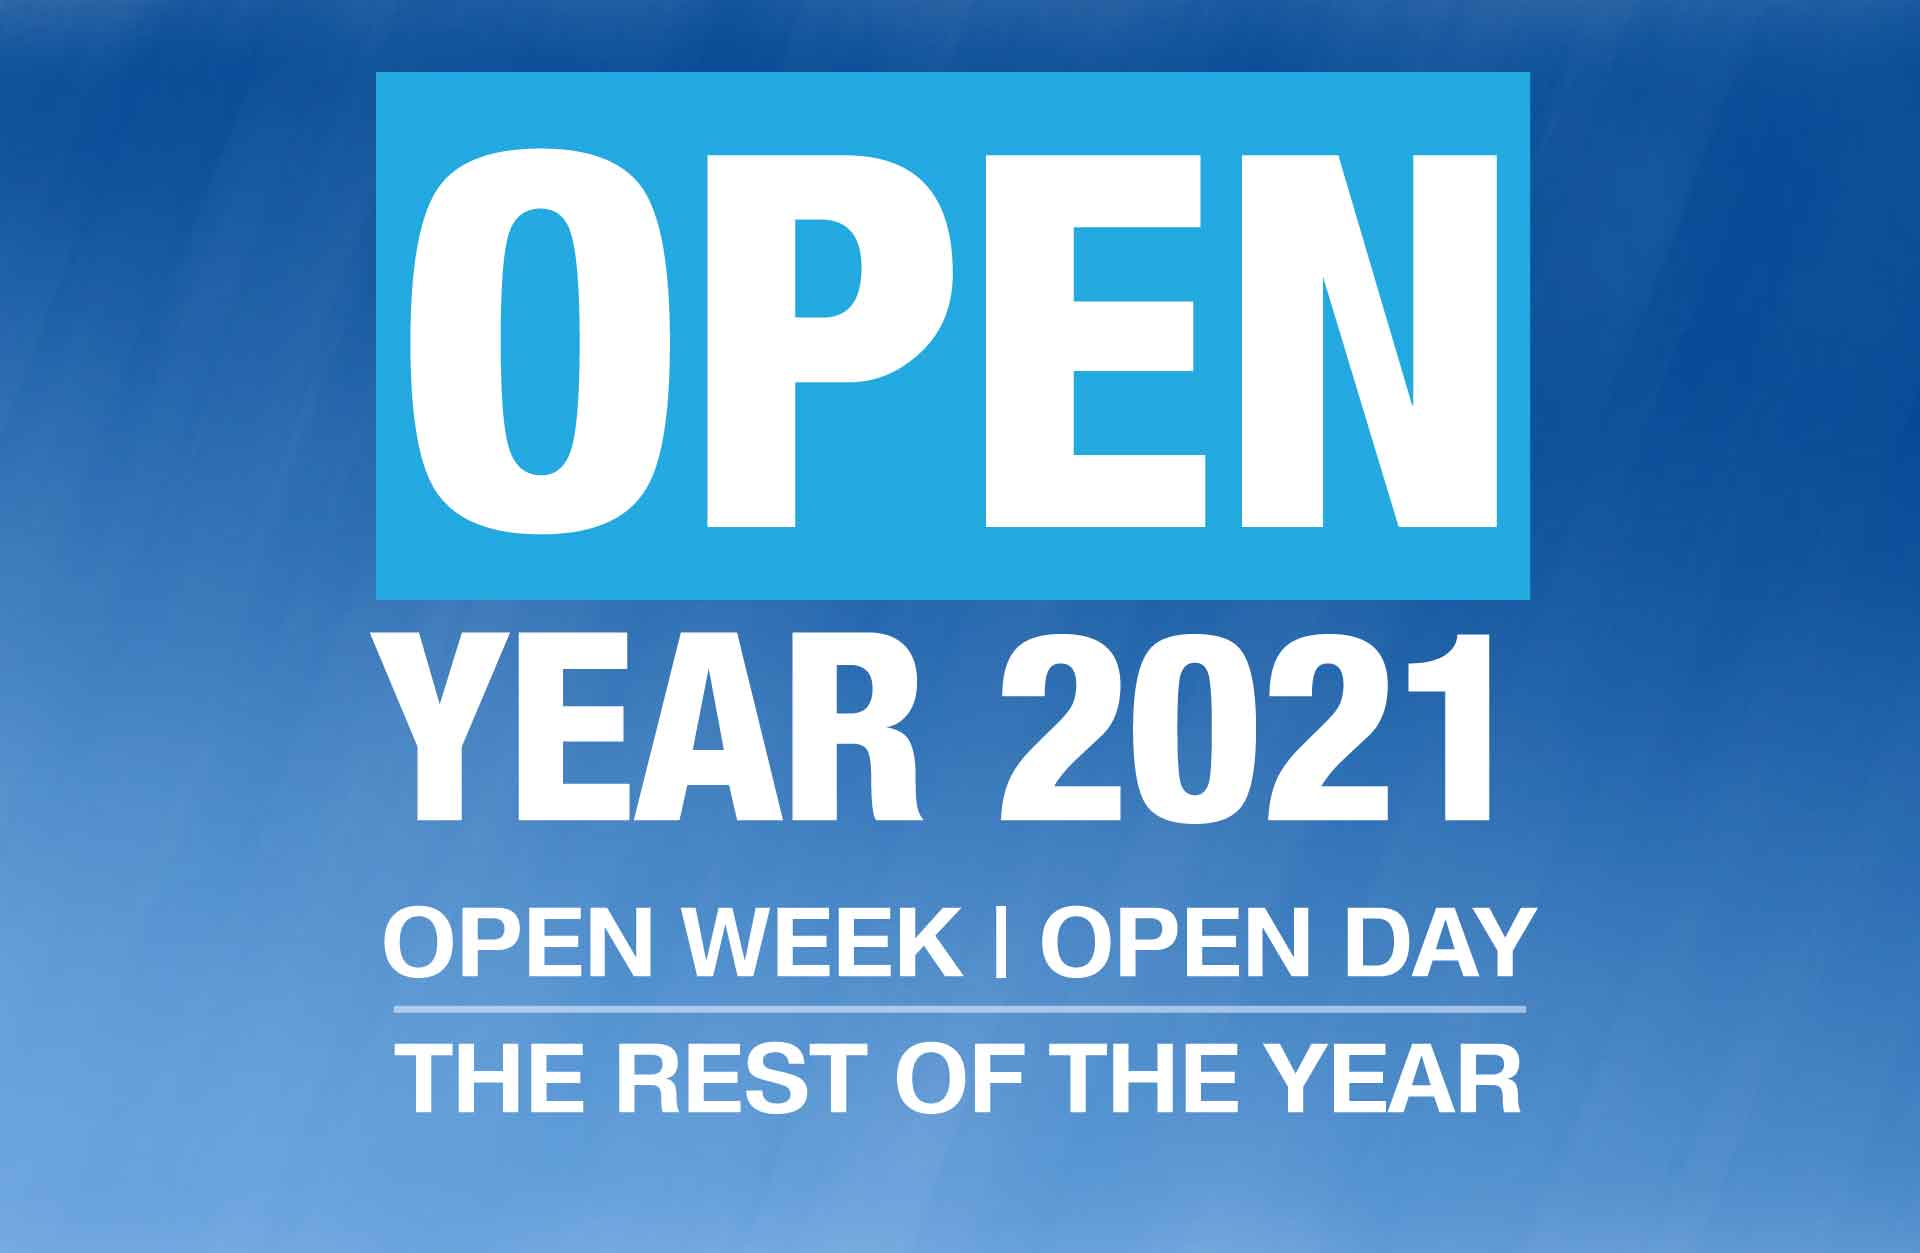 Open Day is your opportunity to visit and meet our community and talk to the staff and residents about living at Lincoln student accommodation.